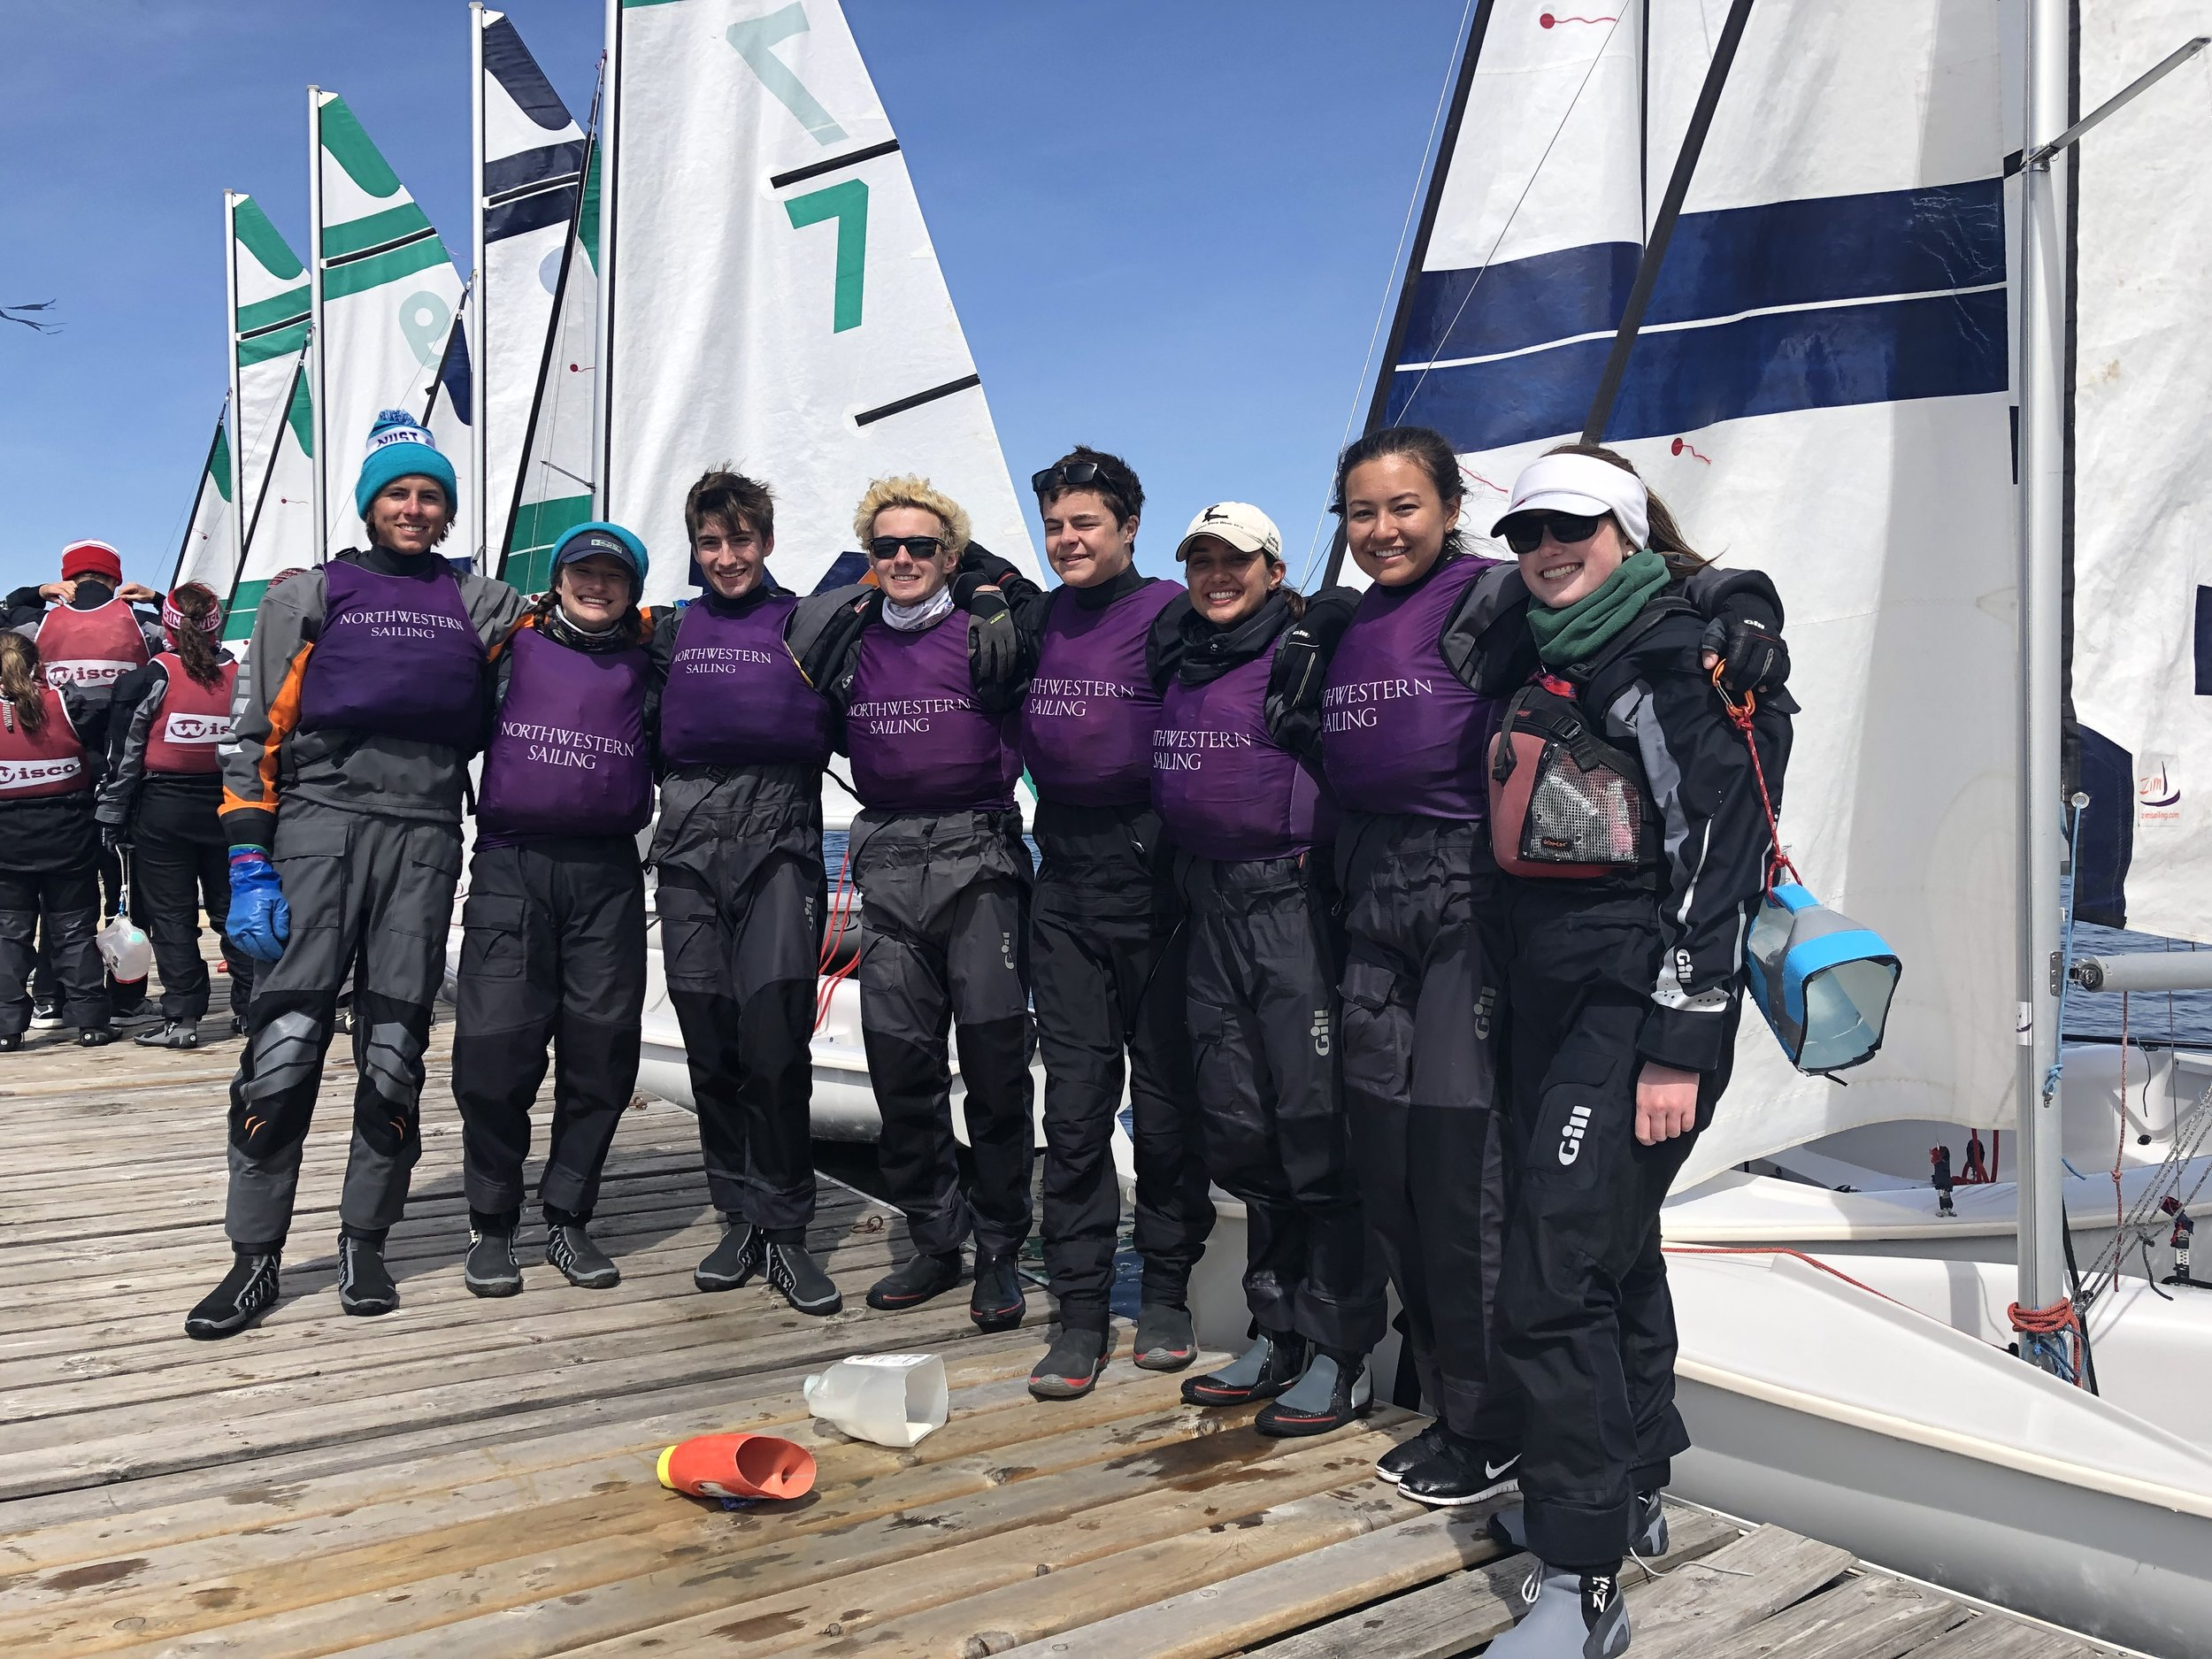 4/13-4/14 MCSA Team Race Qualifiers - Despite a weekend of great sailing, the team did not qualify for Team Race Nationals.